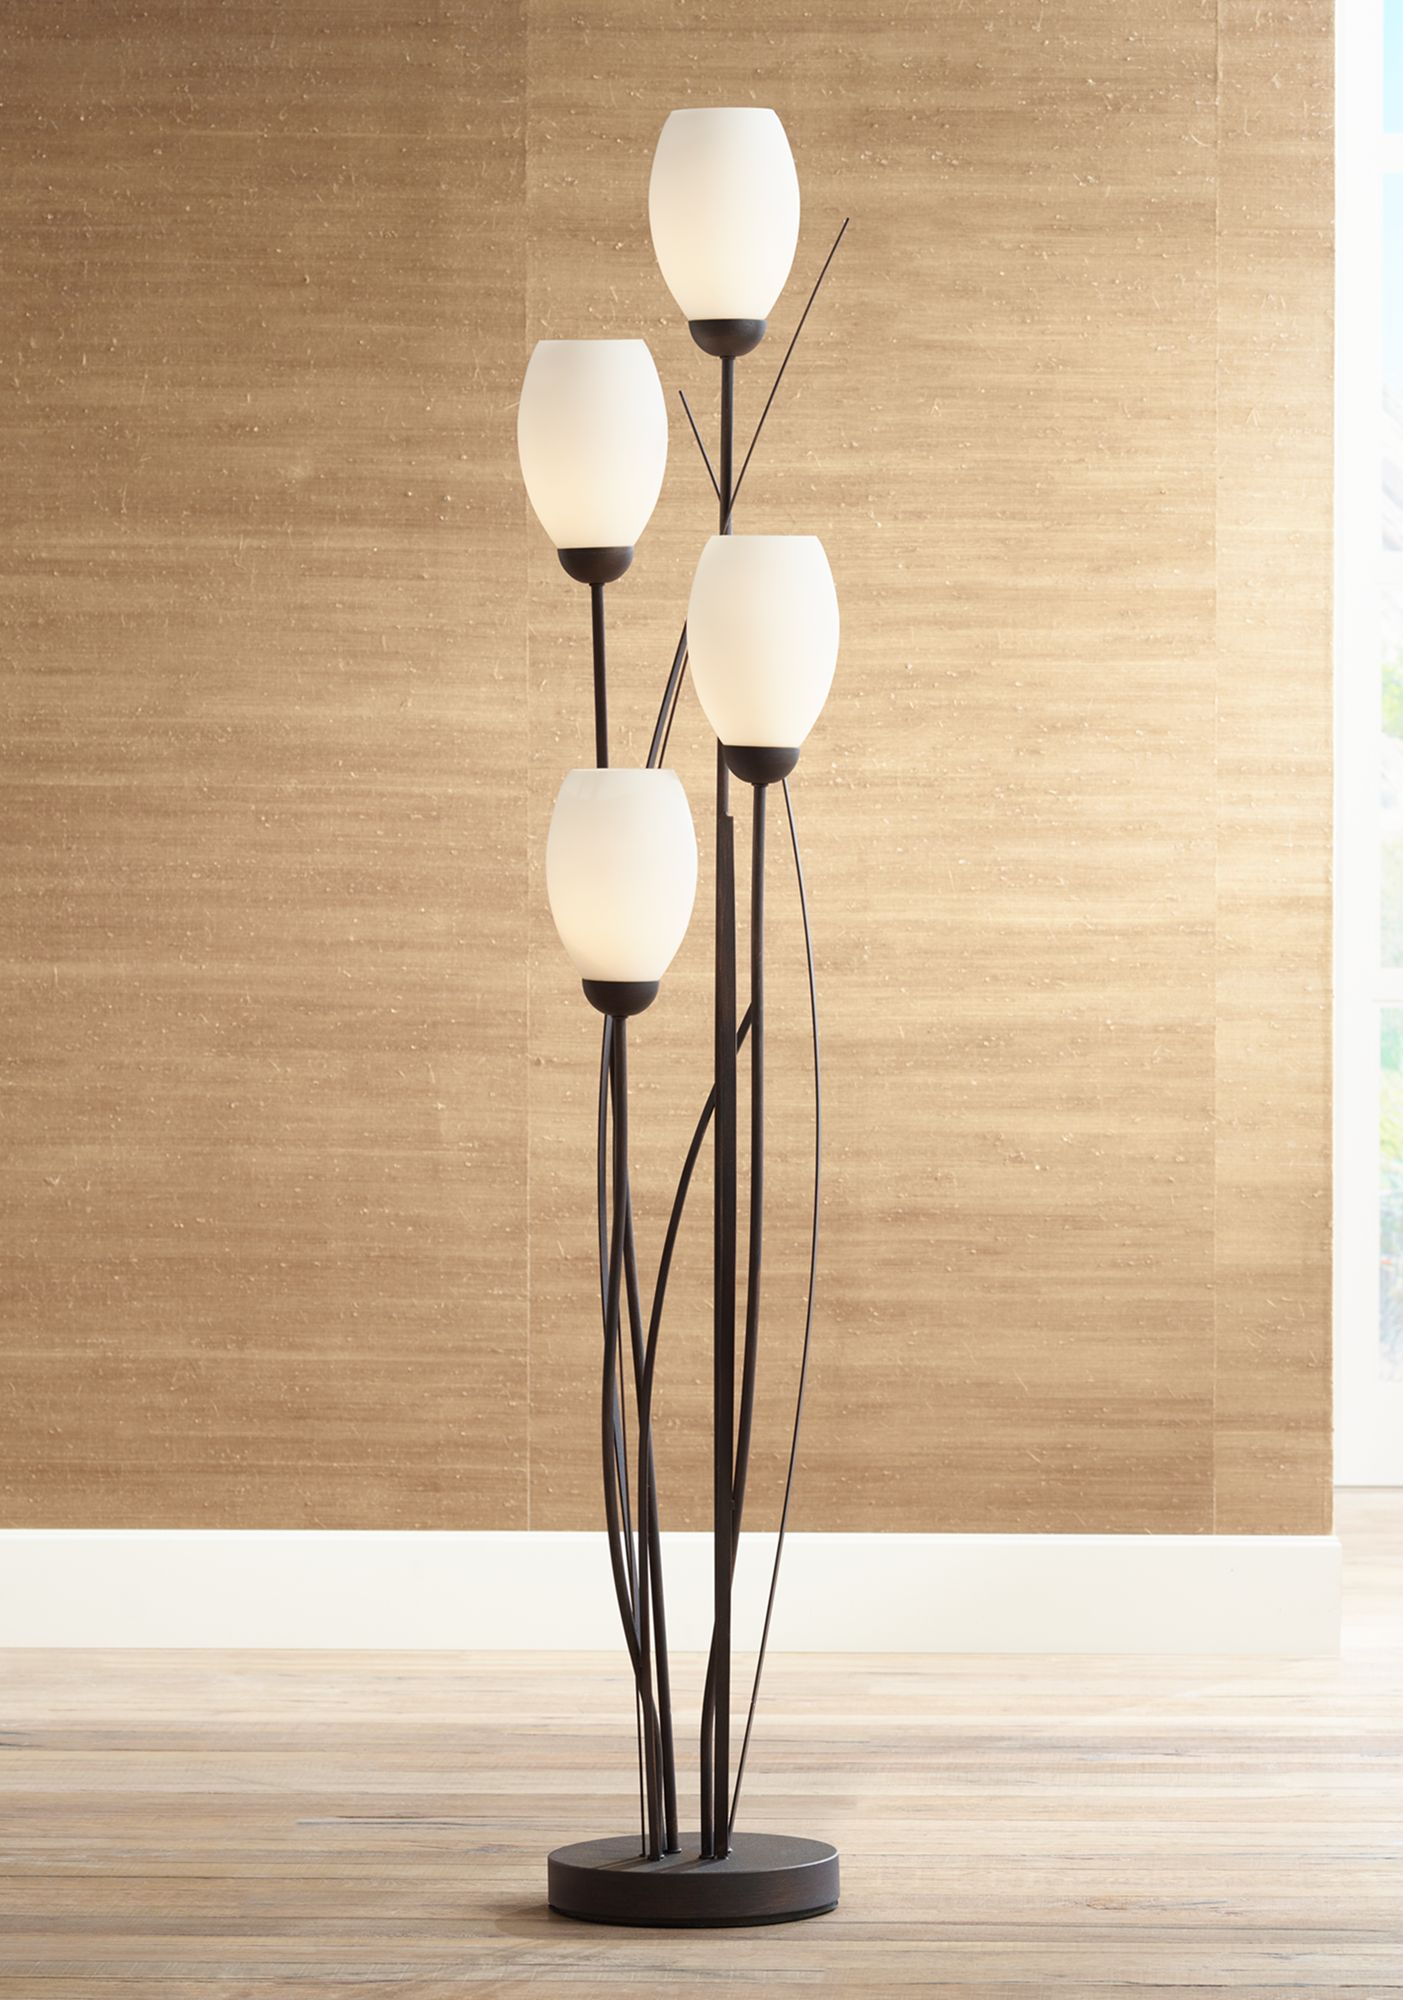 floor lamp living room modern farmhouse rug lamps contemporary to traditional and black metal white glass tulip 4 light